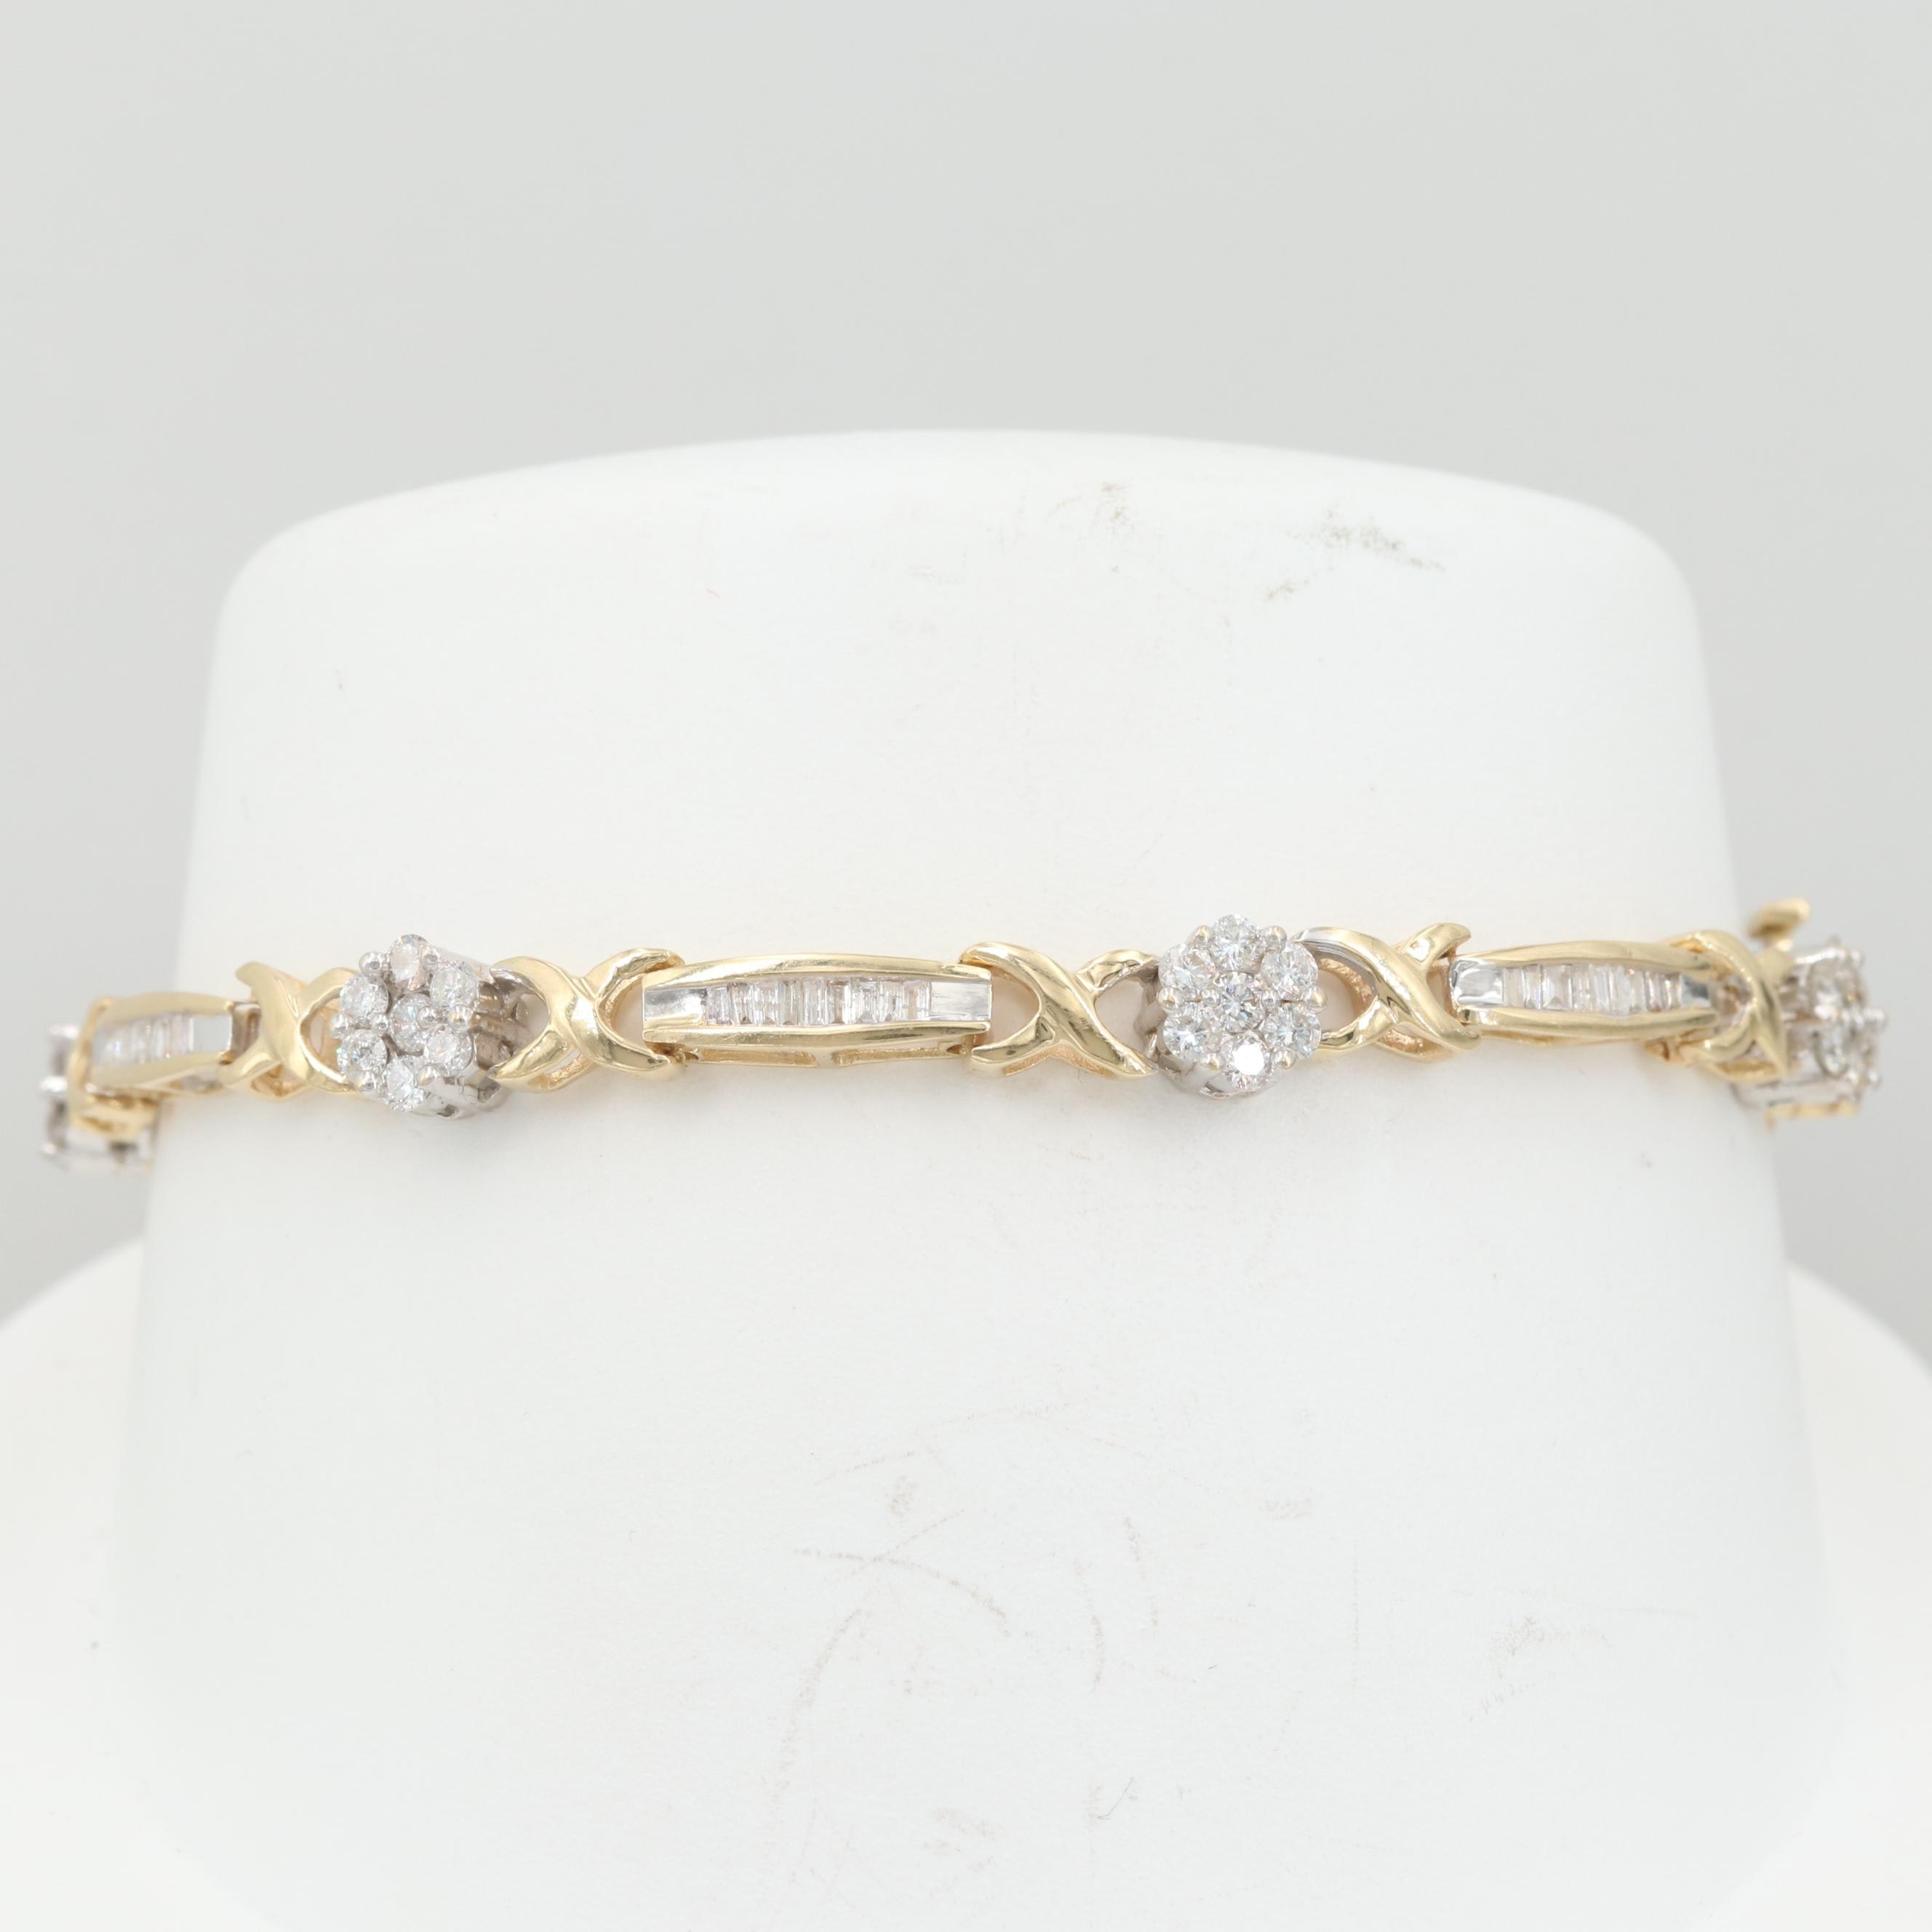 14K Yellow Gold 2.46 CTW Diamond Bracelet with White Gold Accents